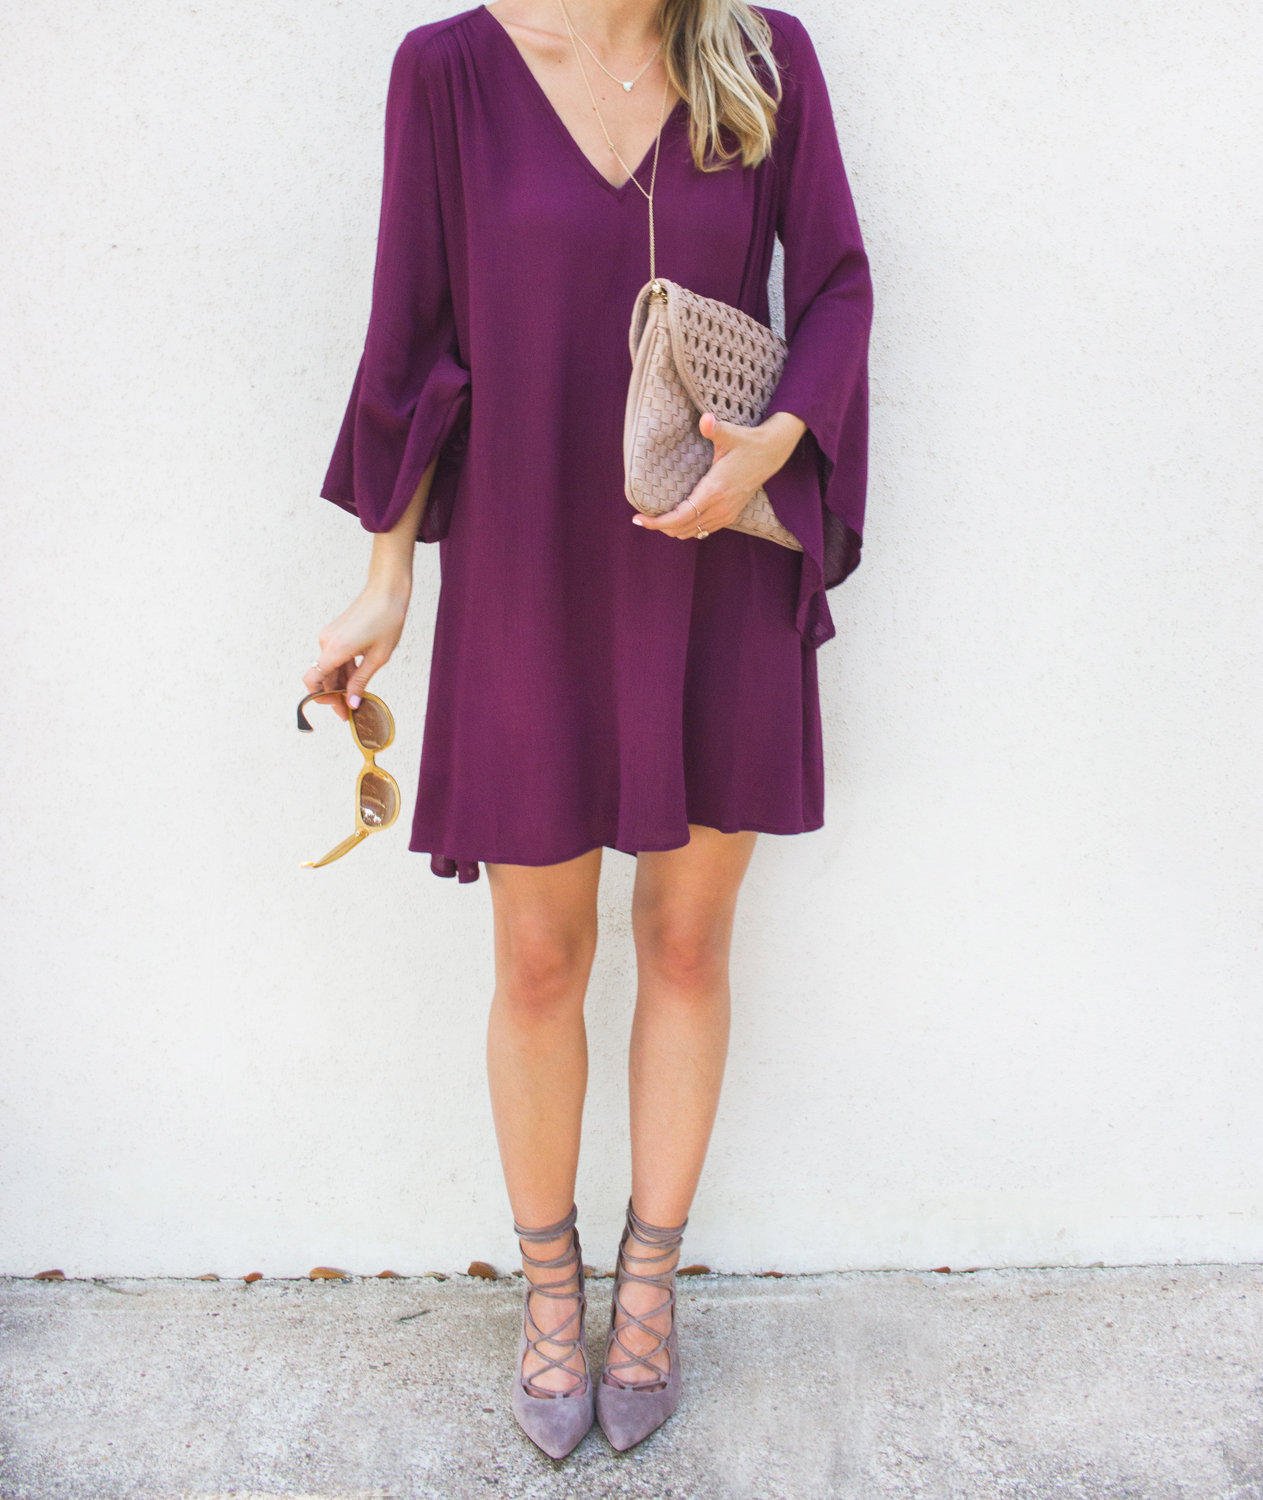 livvyland-blog-olivia-watson-austin-texas-fashion-blogger-bell-sleeve-maroon-wine-burgundy-oxblood-dress-lace-up-heels-3